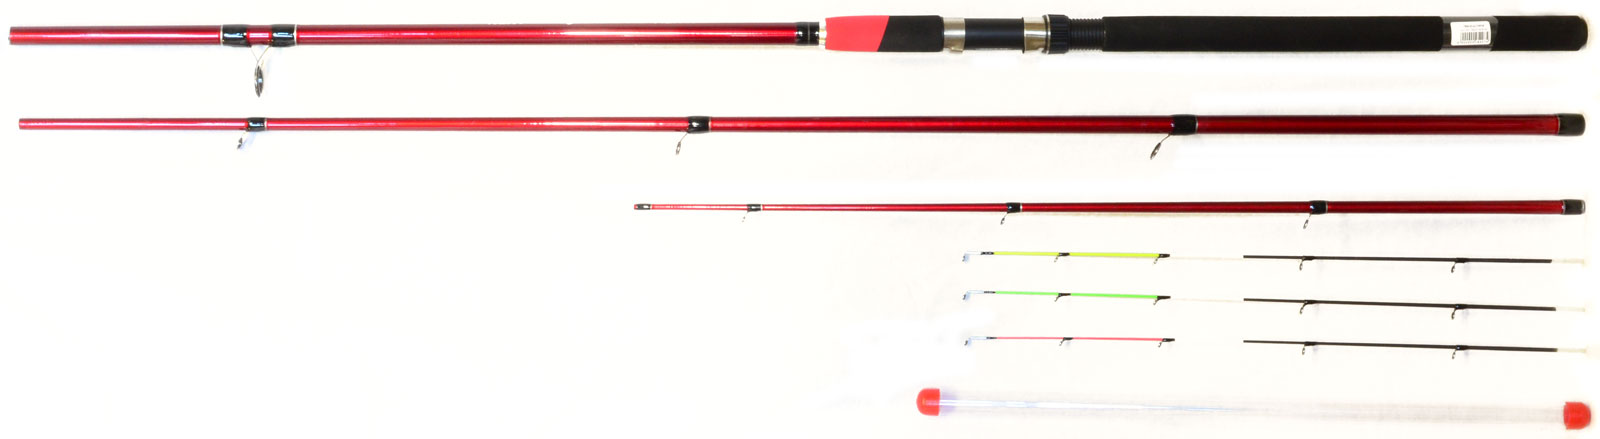 Удилища NEXT Fishing Accord AGAT HEAVY FEEDER